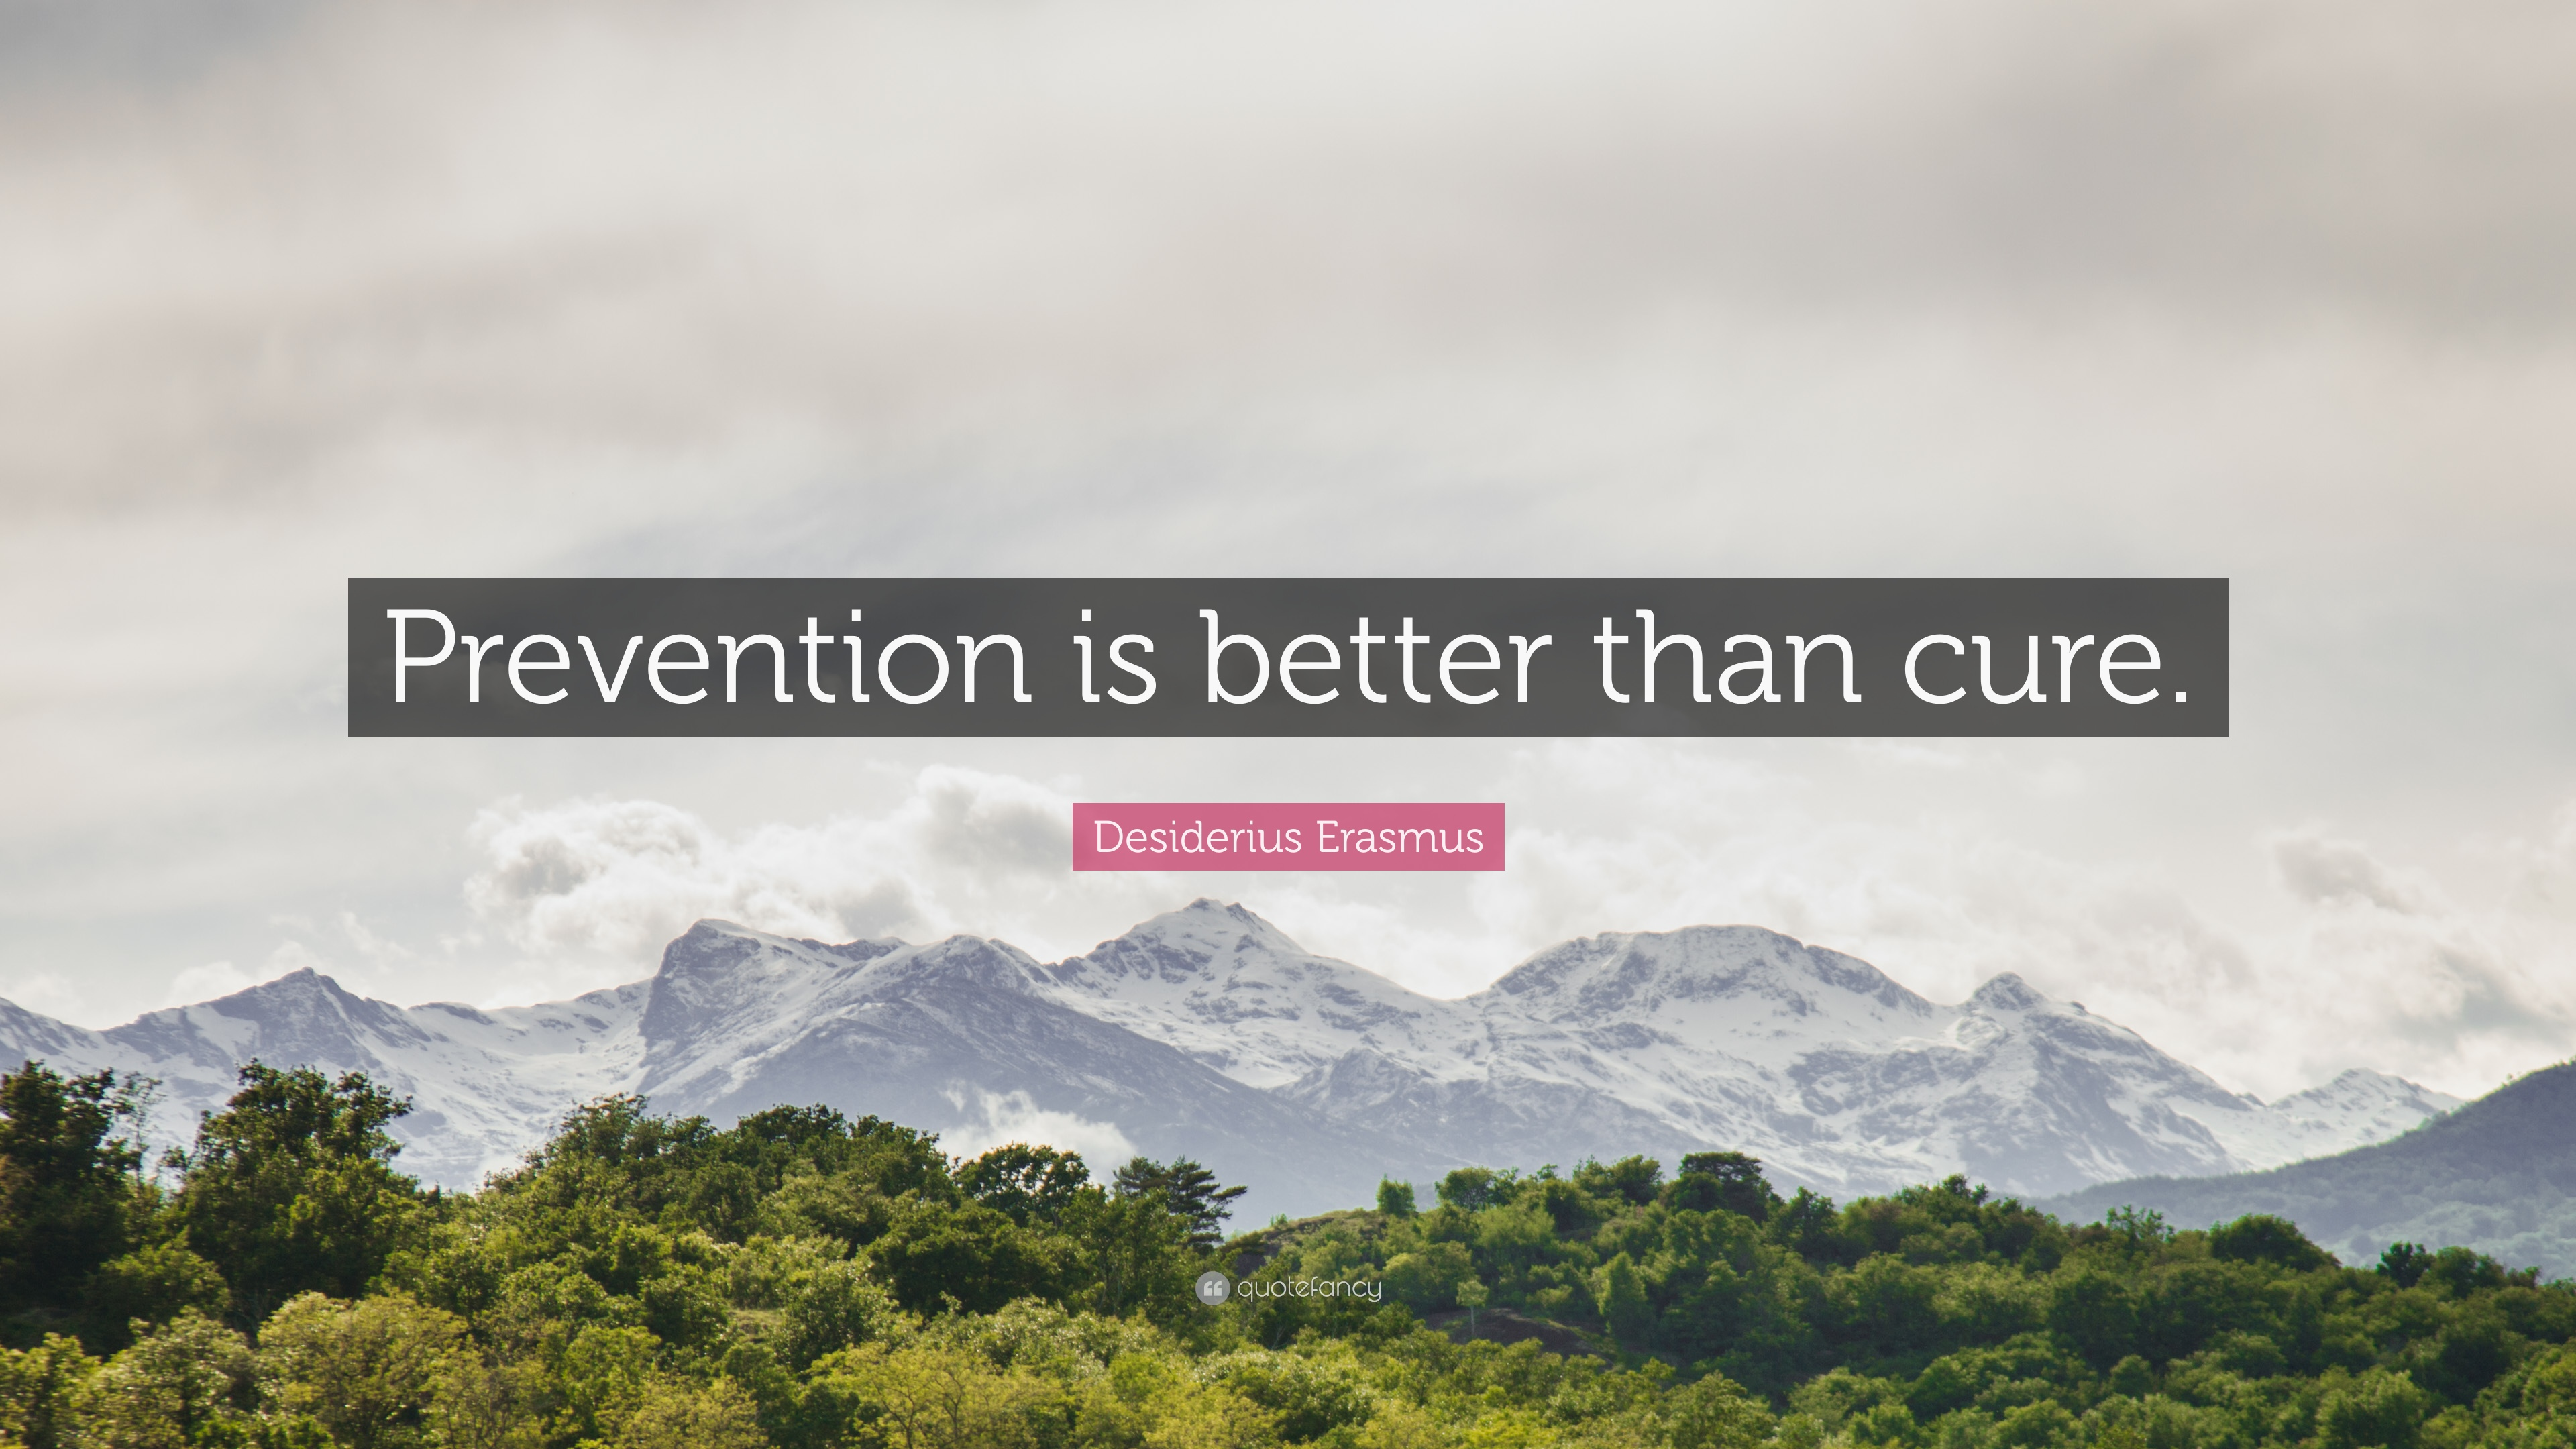 essay on prevention is better than cure health-1